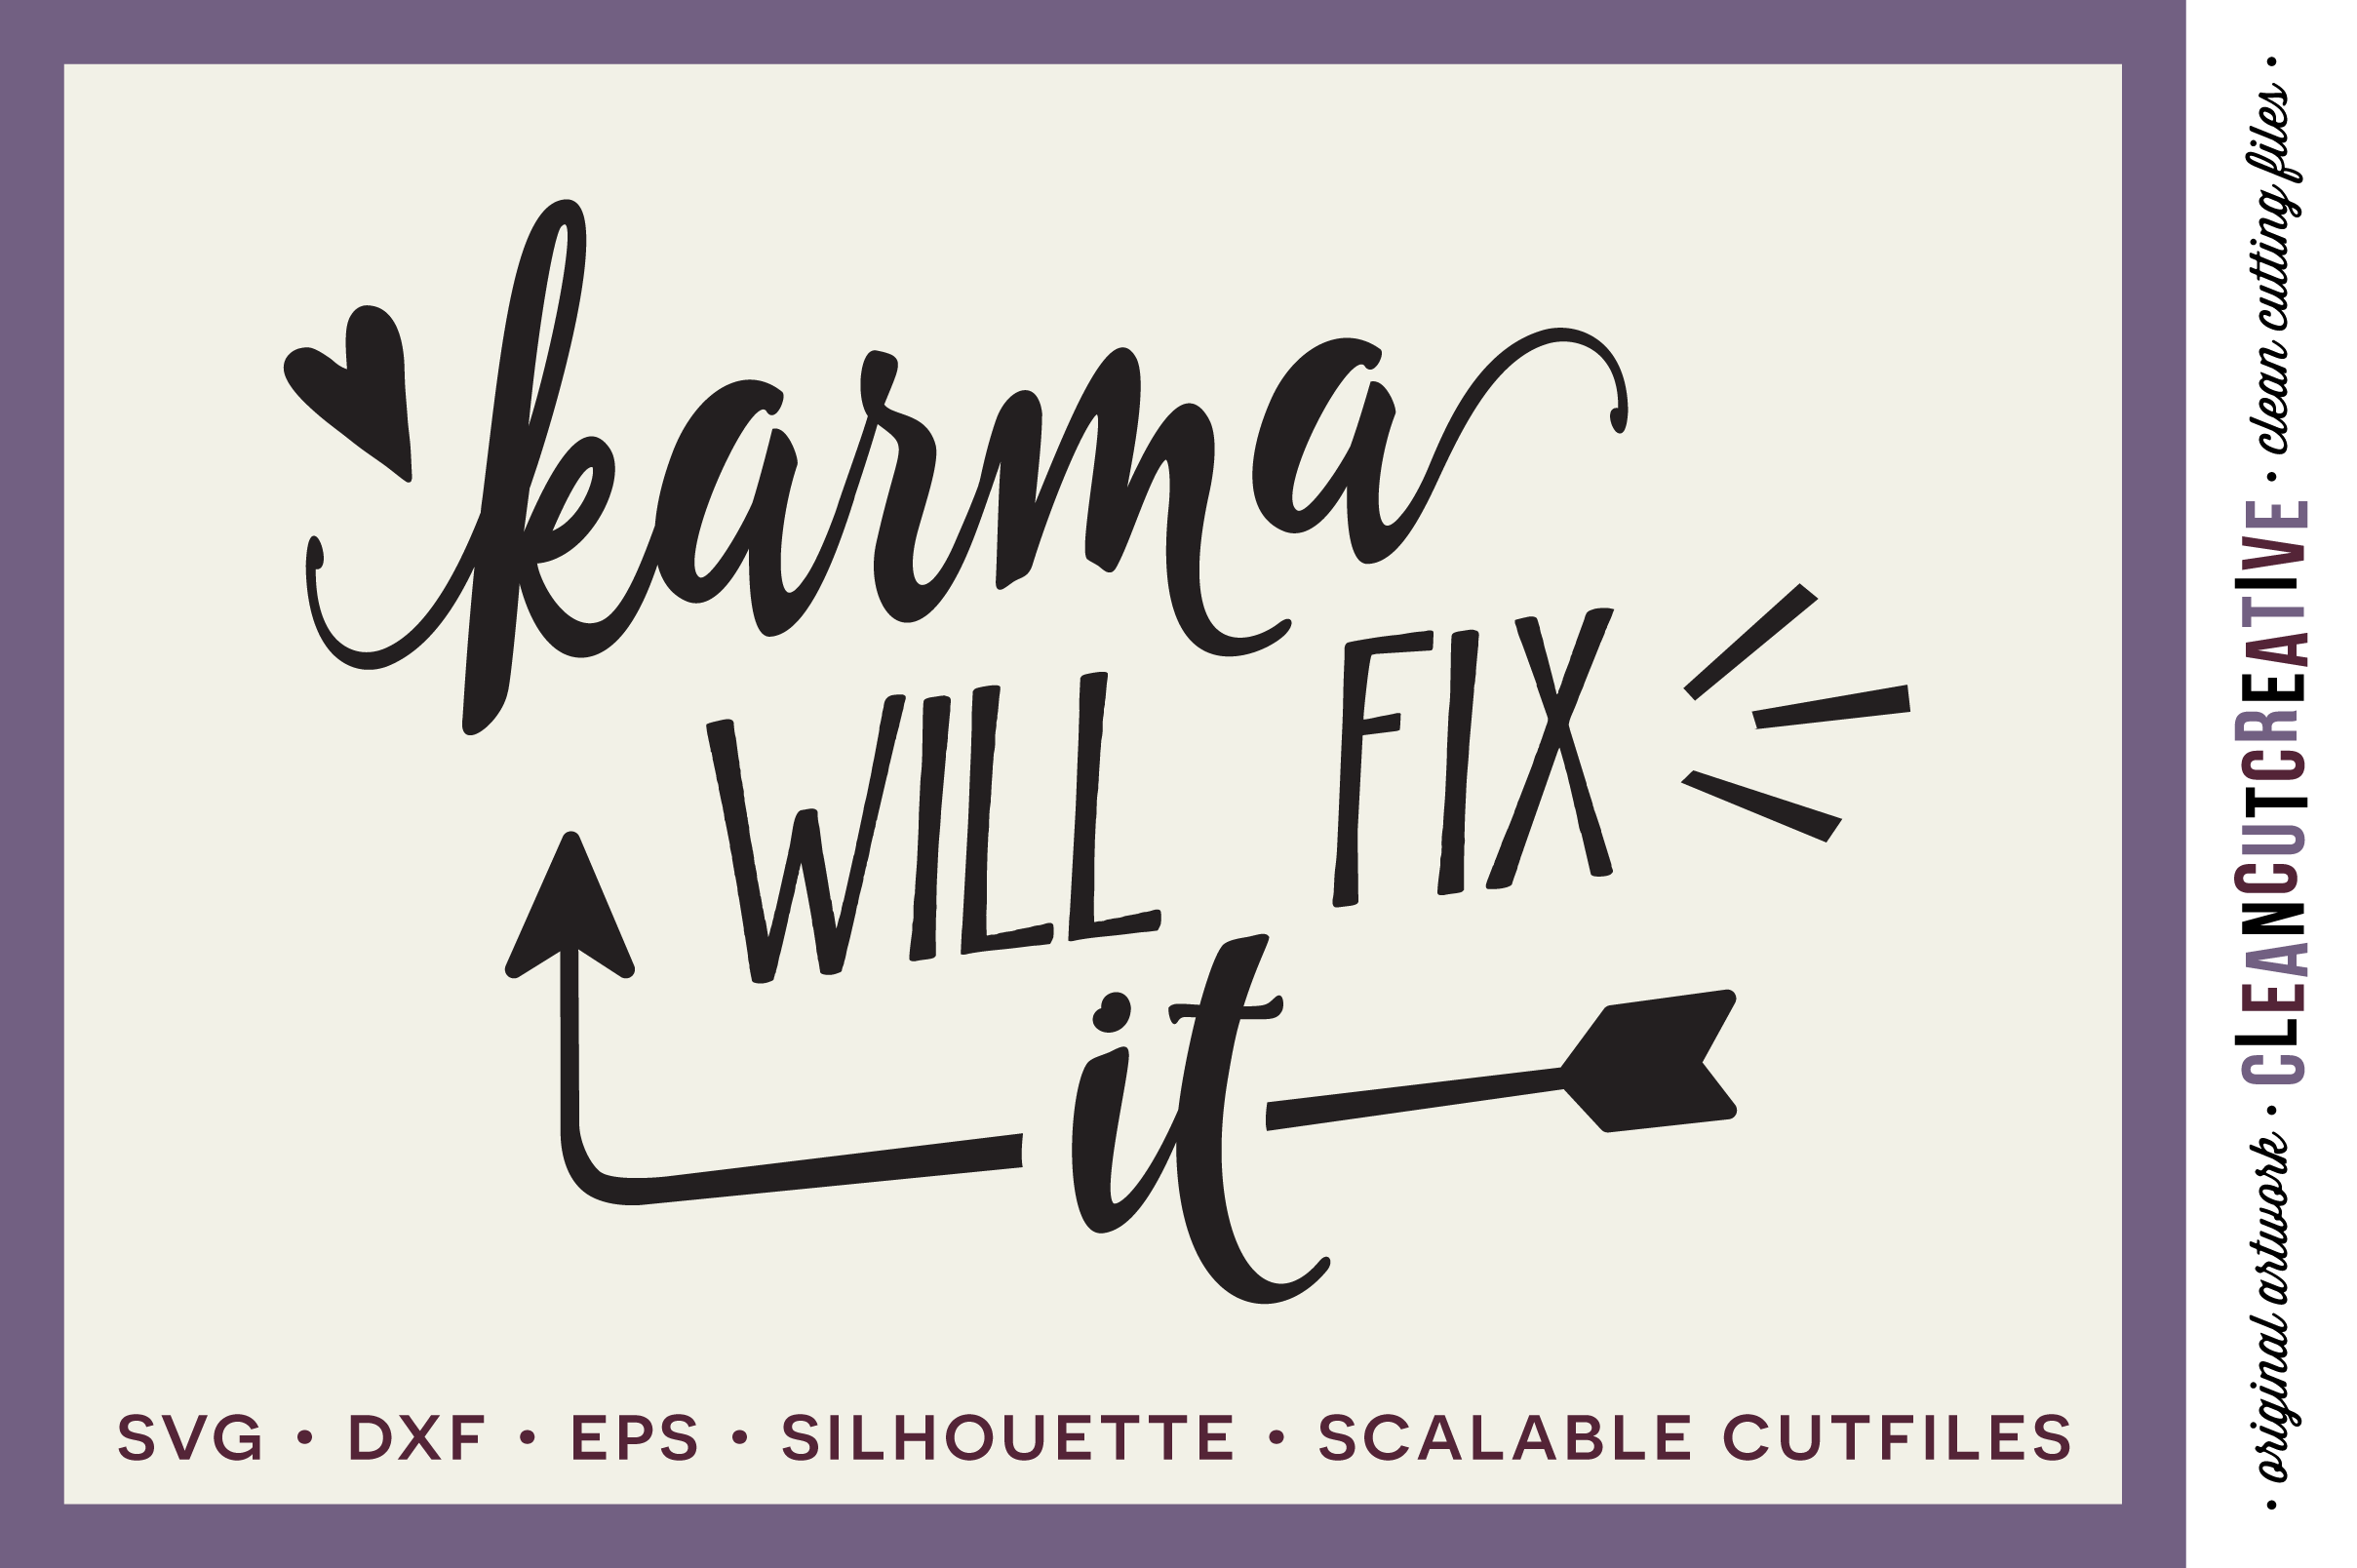 Funny Quote - Karma Will Fix It! - SVG DXF EPS PNG - cut file cutting file clipart - Cricut & Silhouette - clean cutting files example image 1